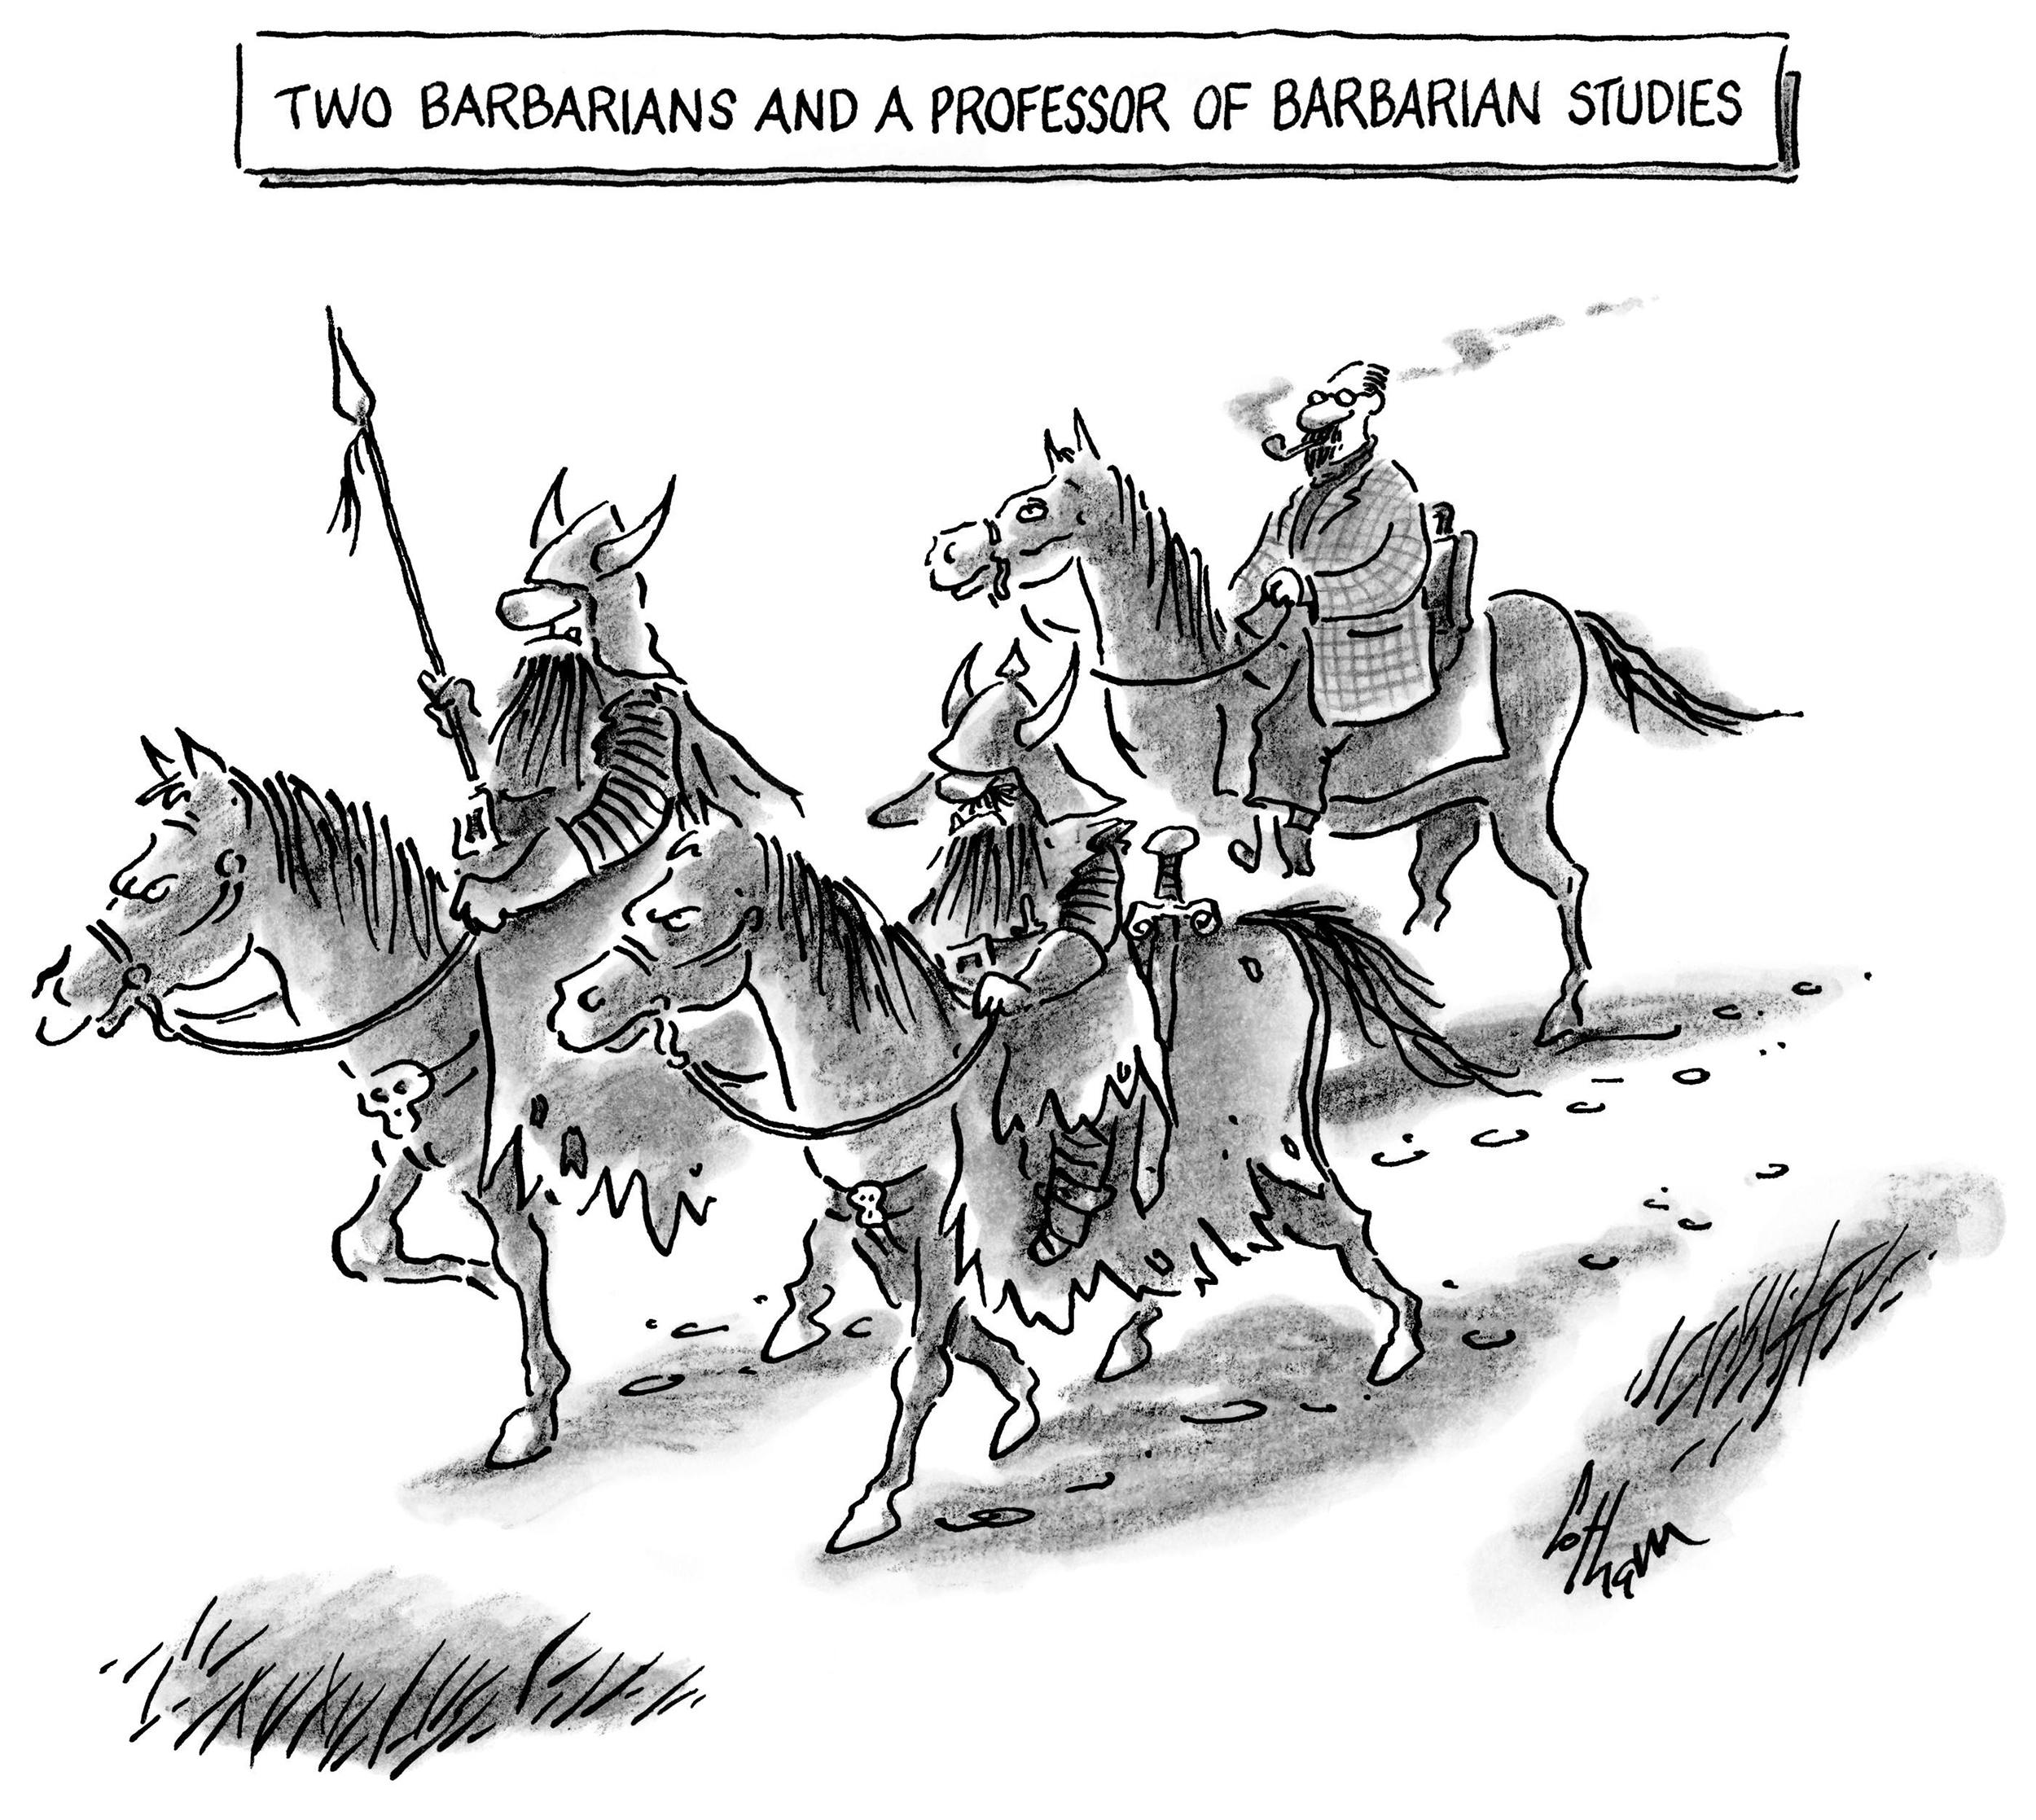 Two Barbarians and A Professor of Barbarian Studies